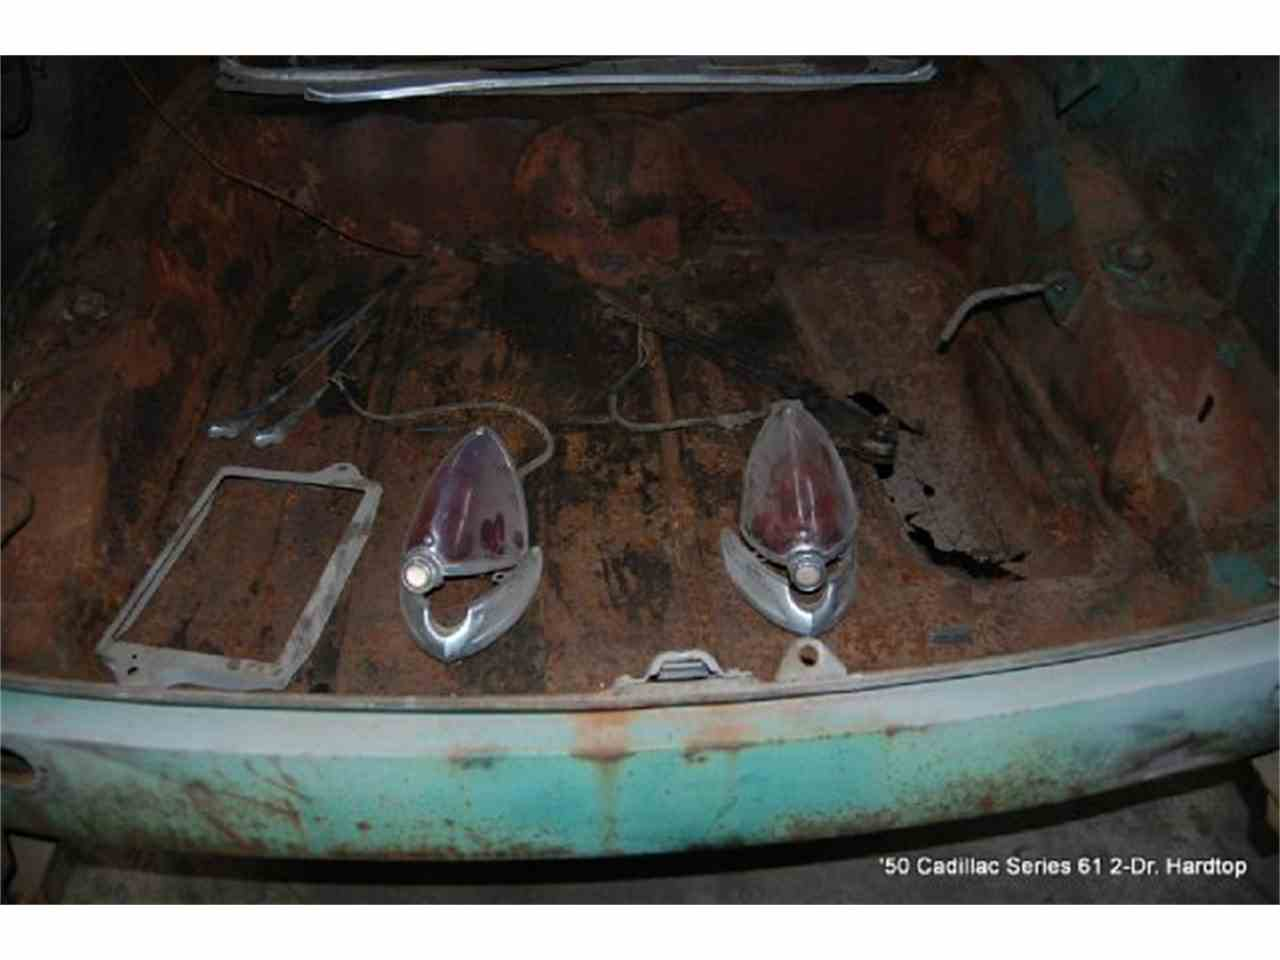 Large Picture of Classic '50 Series 61 Hardtop Project located in St. Simons Island Georgia - $5,500.00 - DDK3